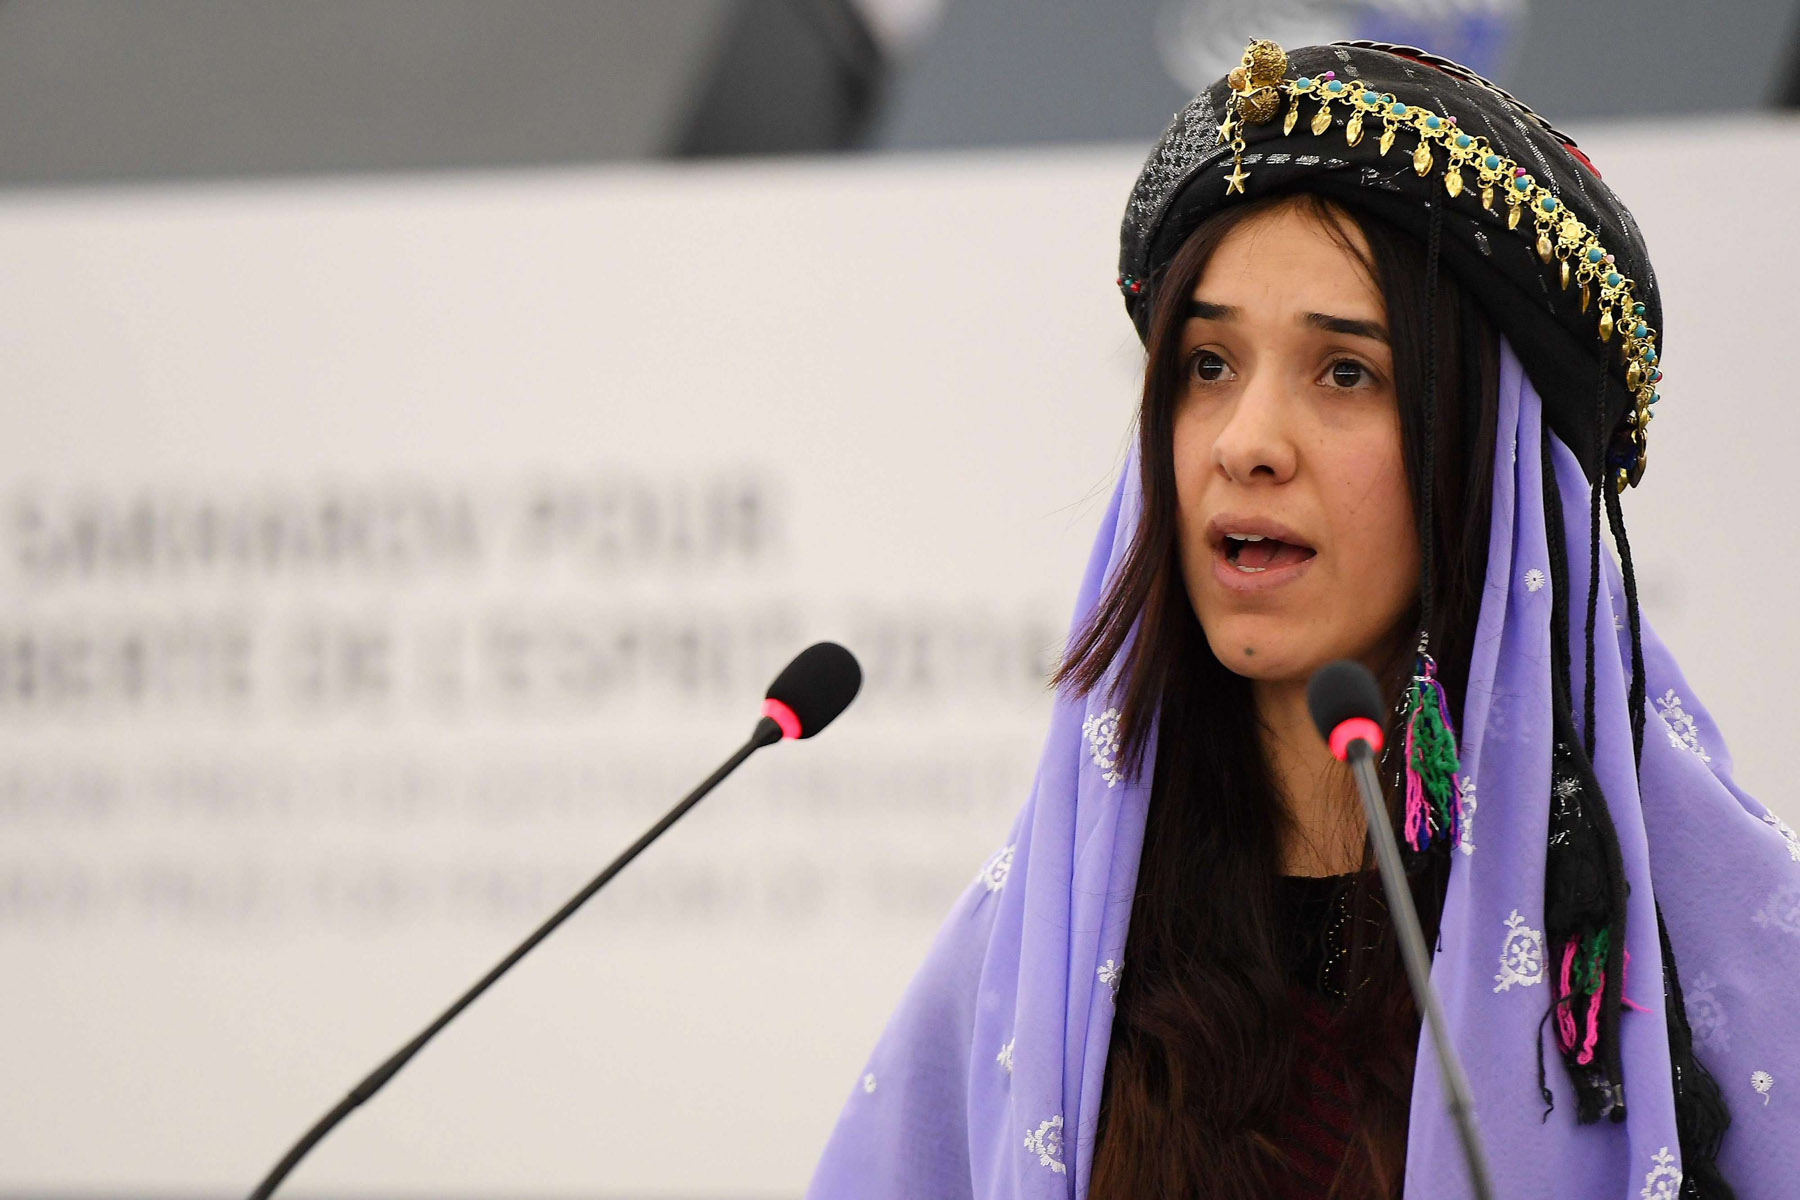 A story of survival. A 2016 file picture shows Nadia Murad, public advocate for the Yazidi community in Iraq, delivering a speech at the European parliament in Strasbourg.  (AFP)